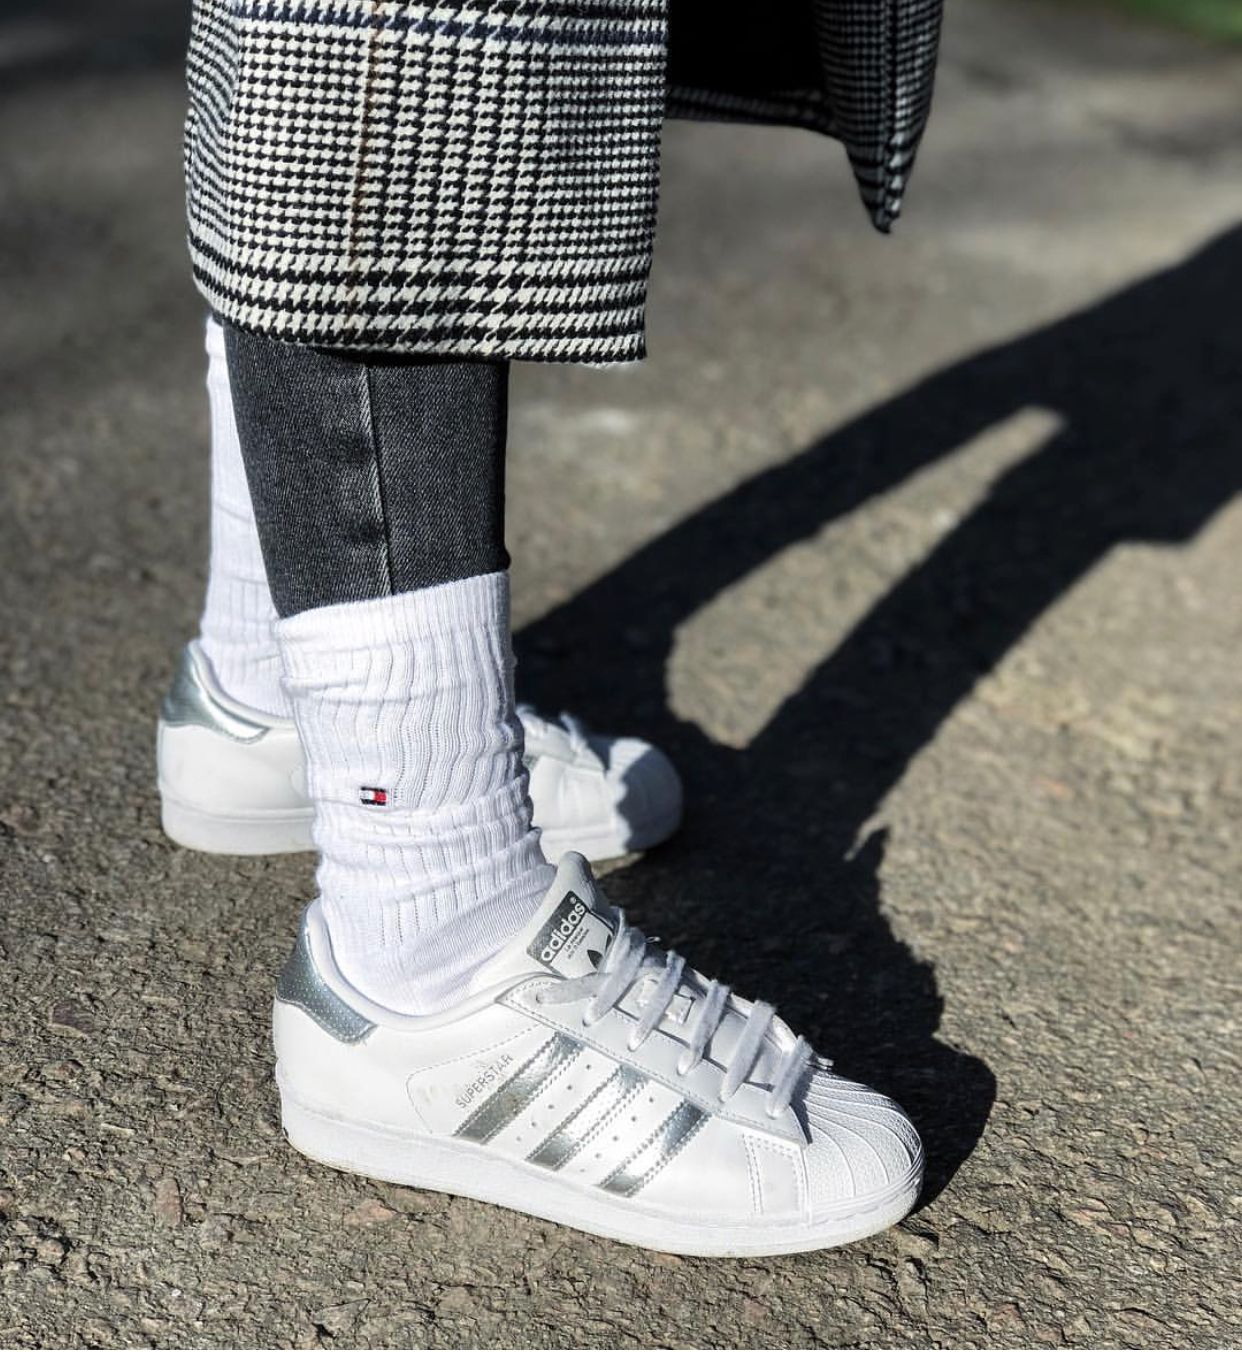 White And Silver Combination Adidas Superstar Silver White Adidas Superstar Schuhe Superstars Schuhe Adidas Superstar